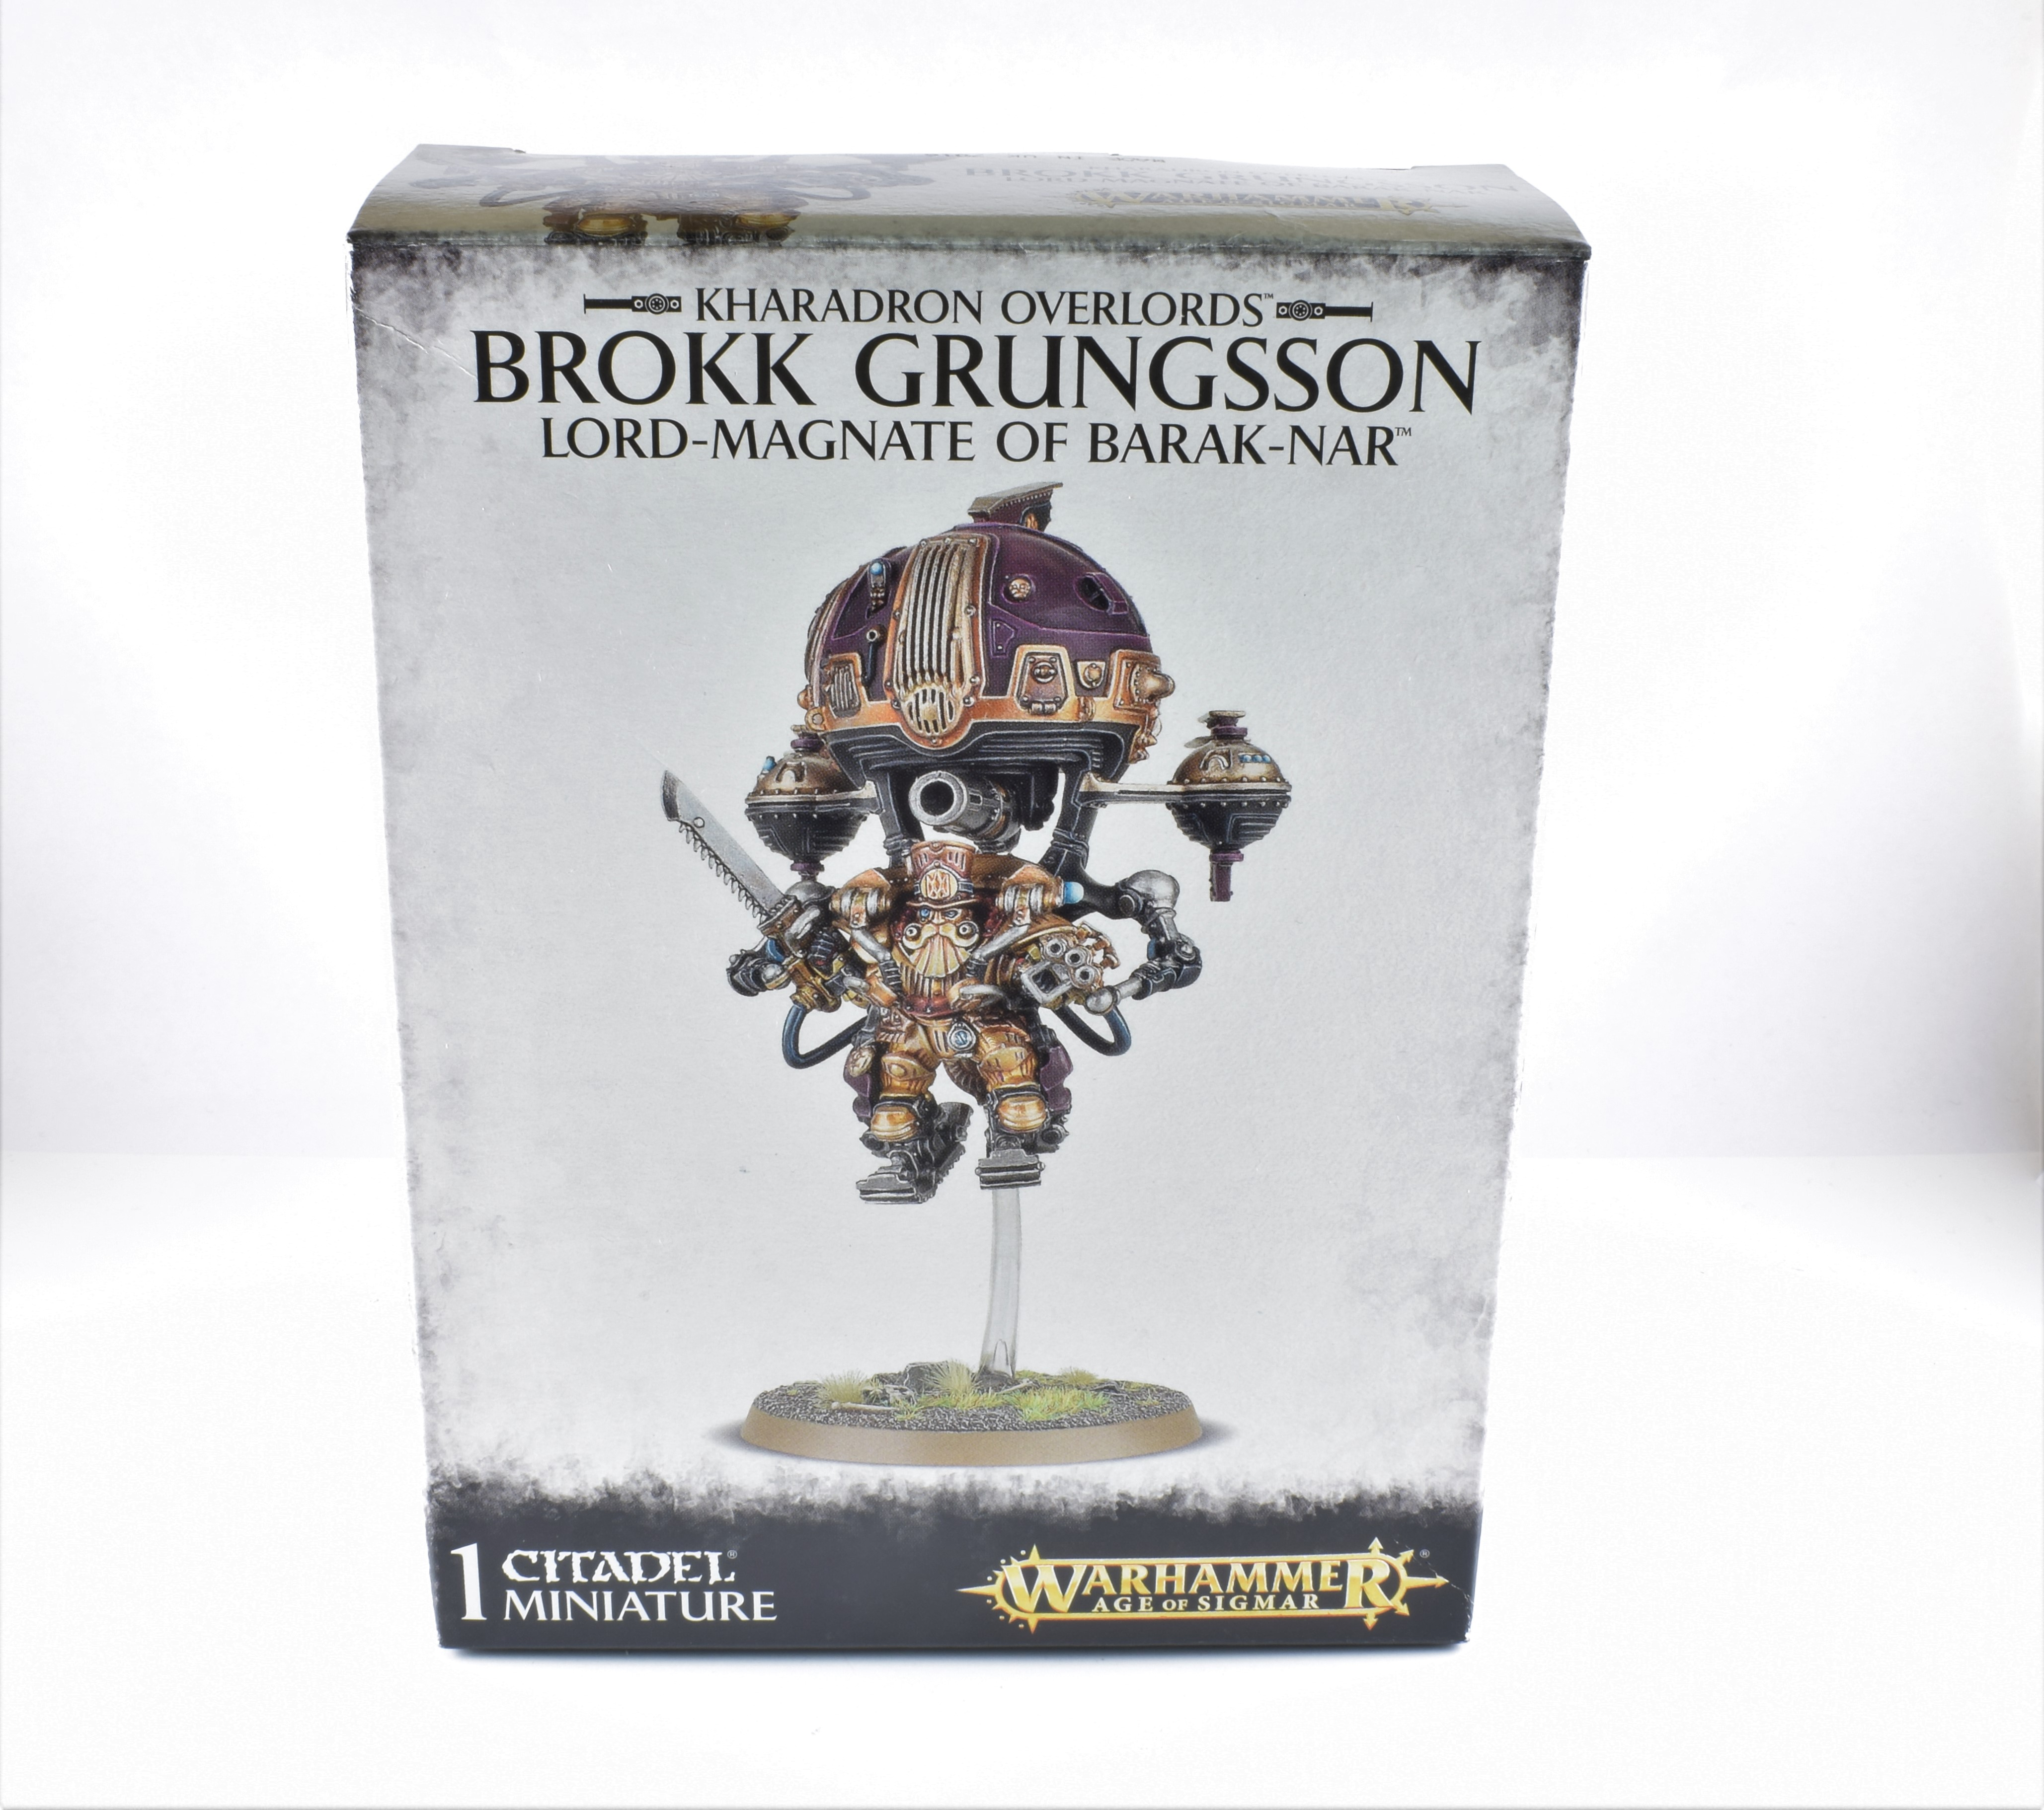 Brokk Grungsson, Lord-Magnate of Barak-Nar